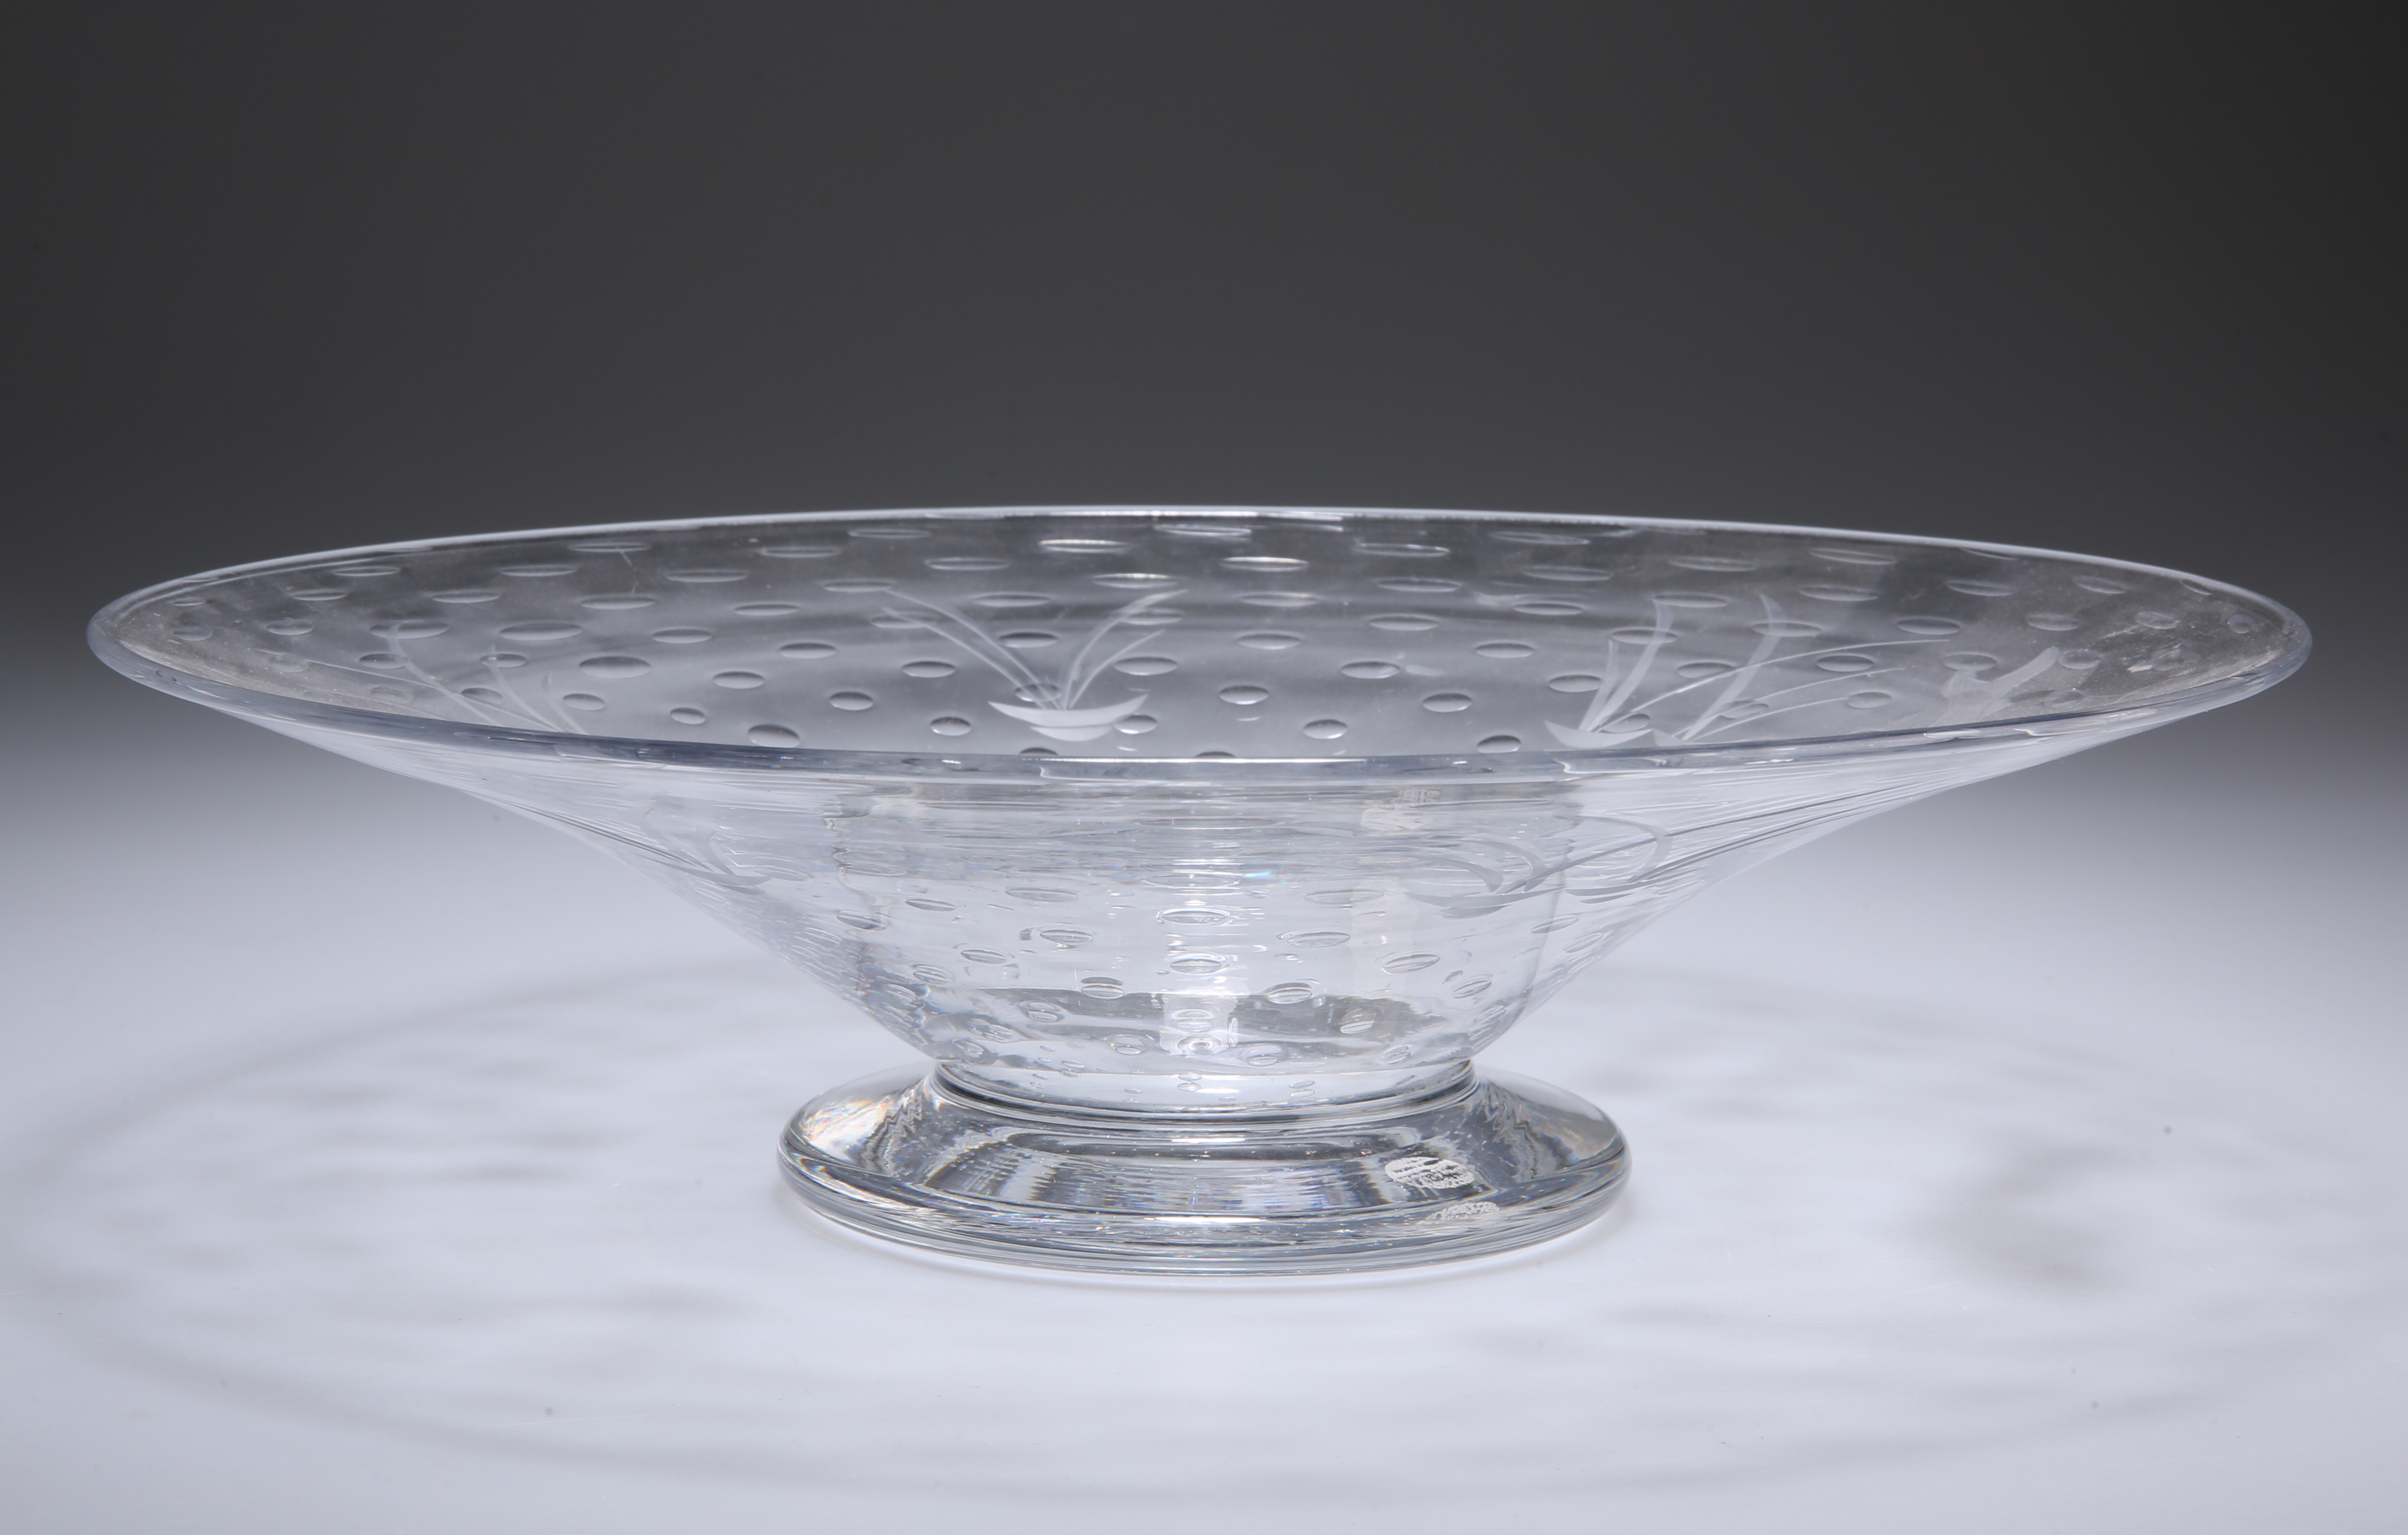 THOMAS WEBB & SONS AN EARLY 20TH CENTURY GLASS BOWL - Image 4 of 4